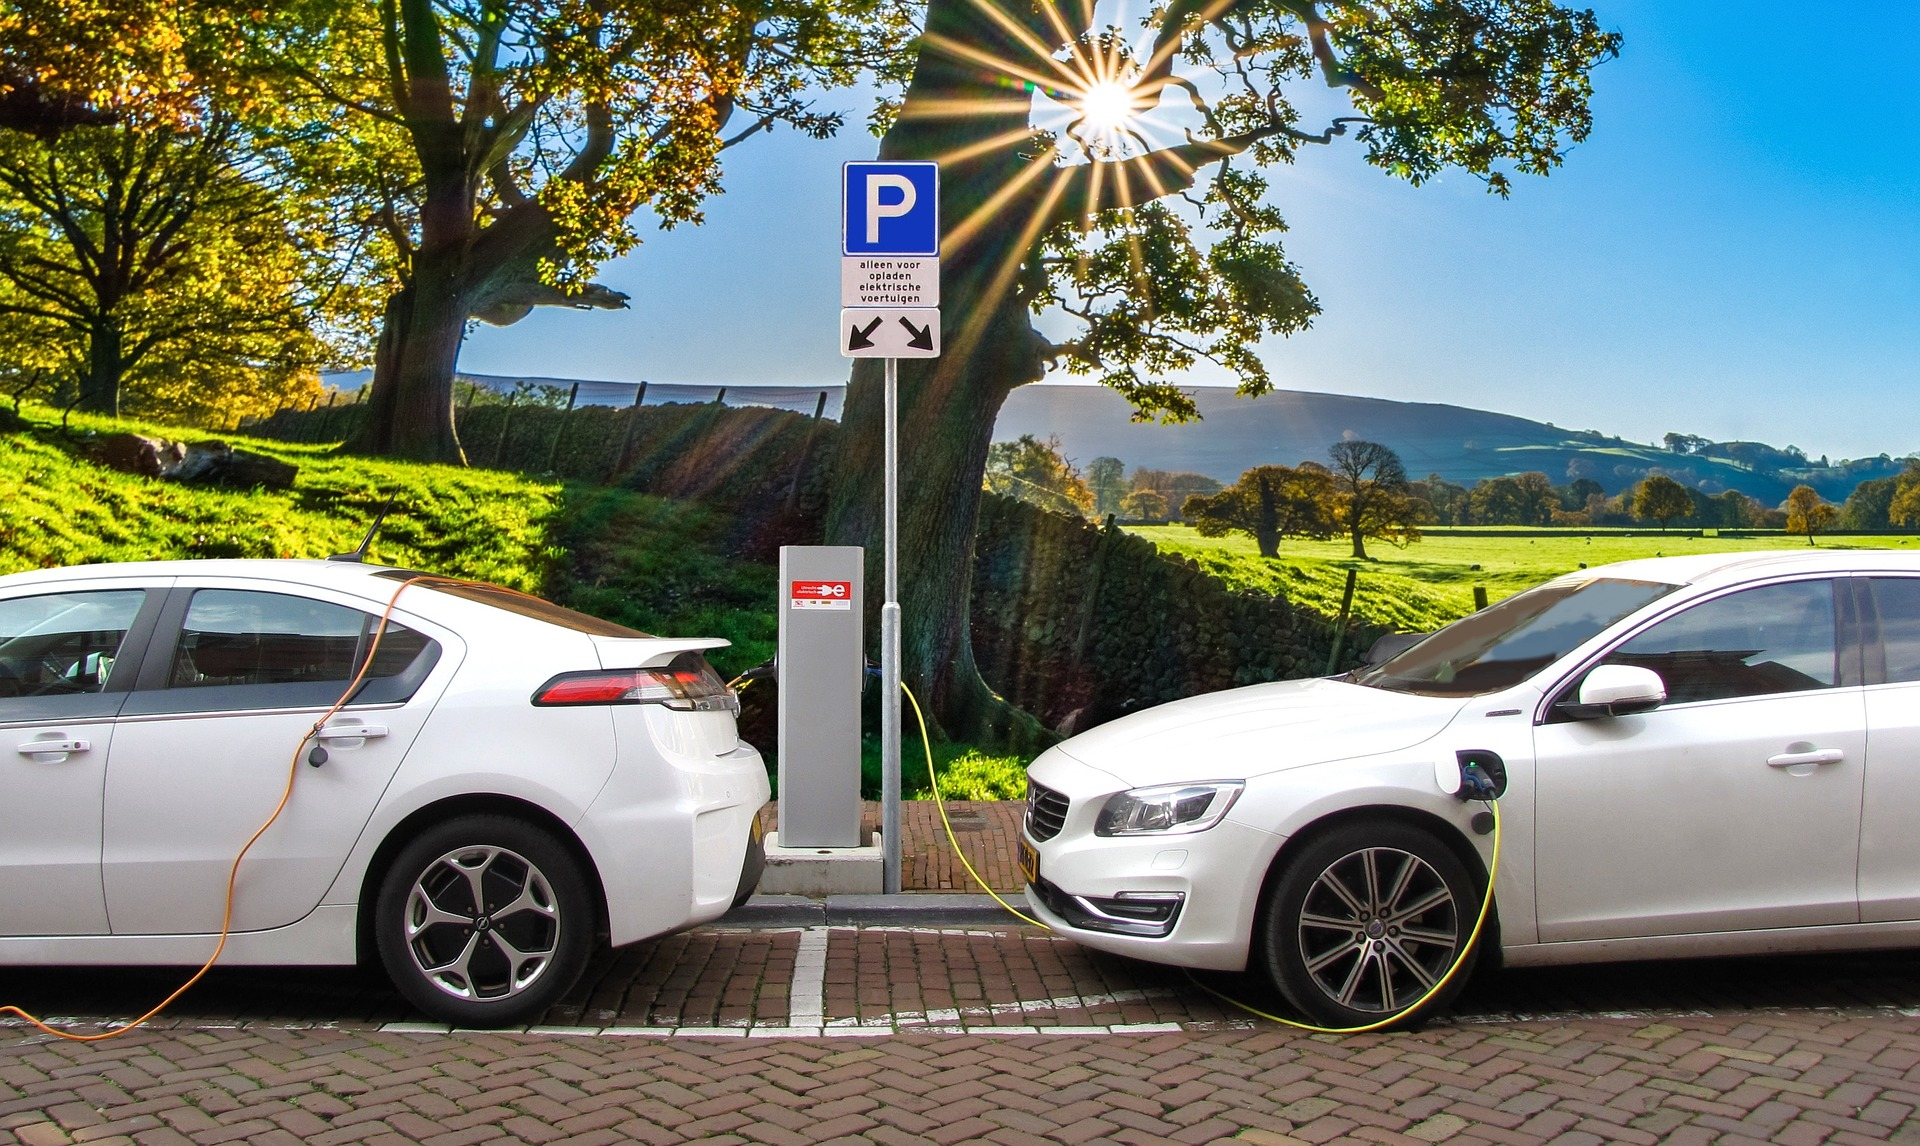 Two electric cars charging on the street.